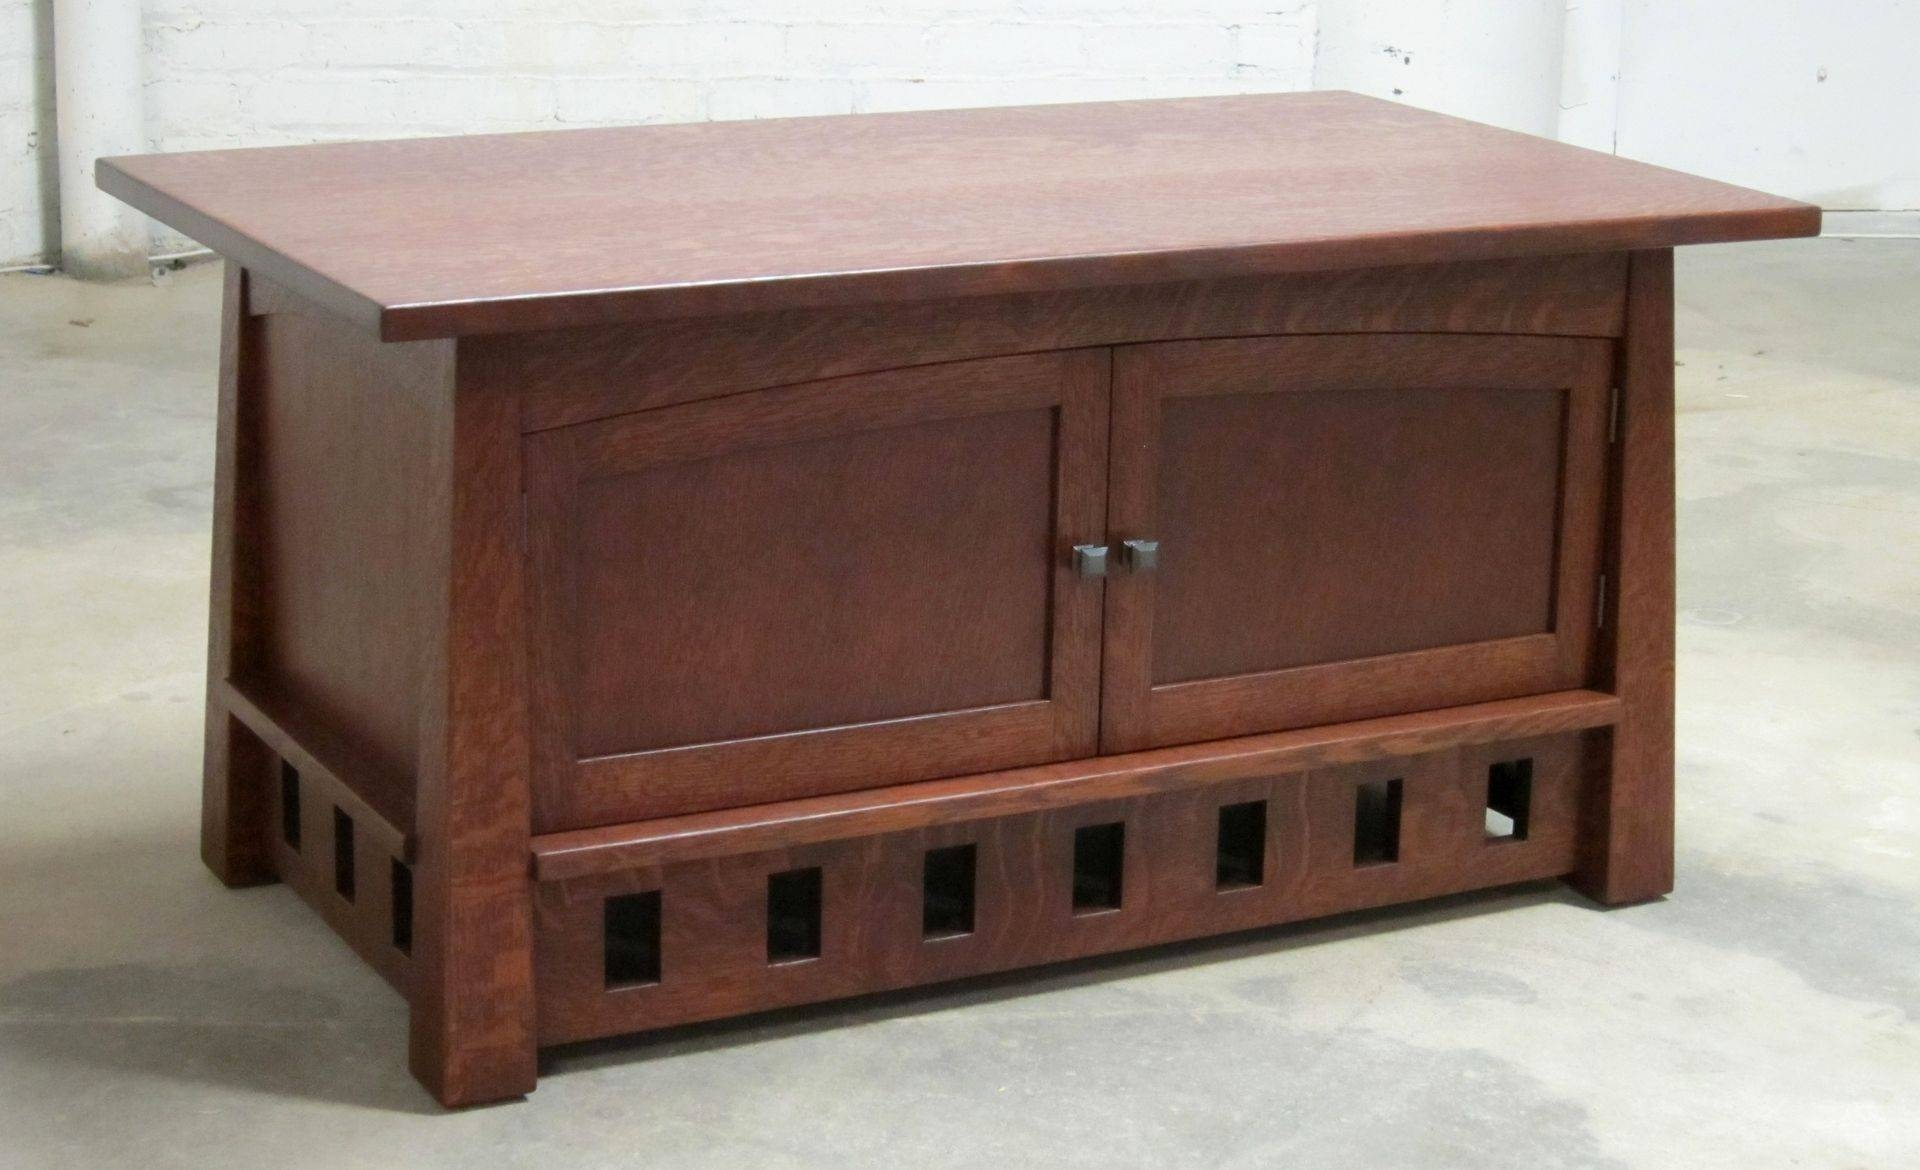 Handmade Arts-And-Crafts Pagoda Coffee Table And Blanket Chest inside Blanket Box Coffee Tables (Image 17 of 30)